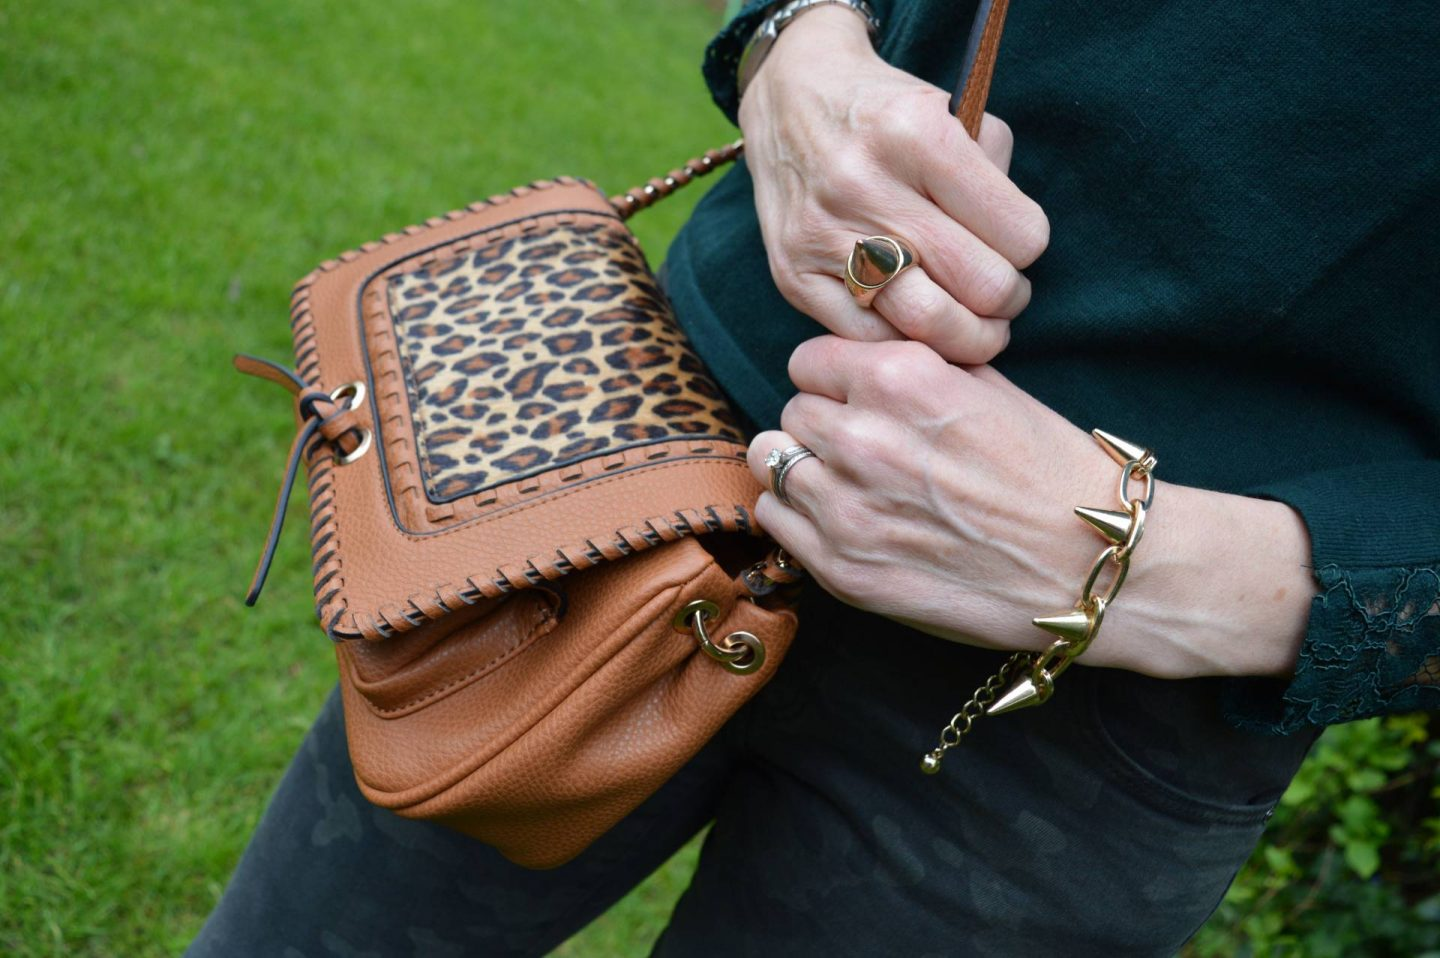 Scottage tan and leopard print crossbody bag